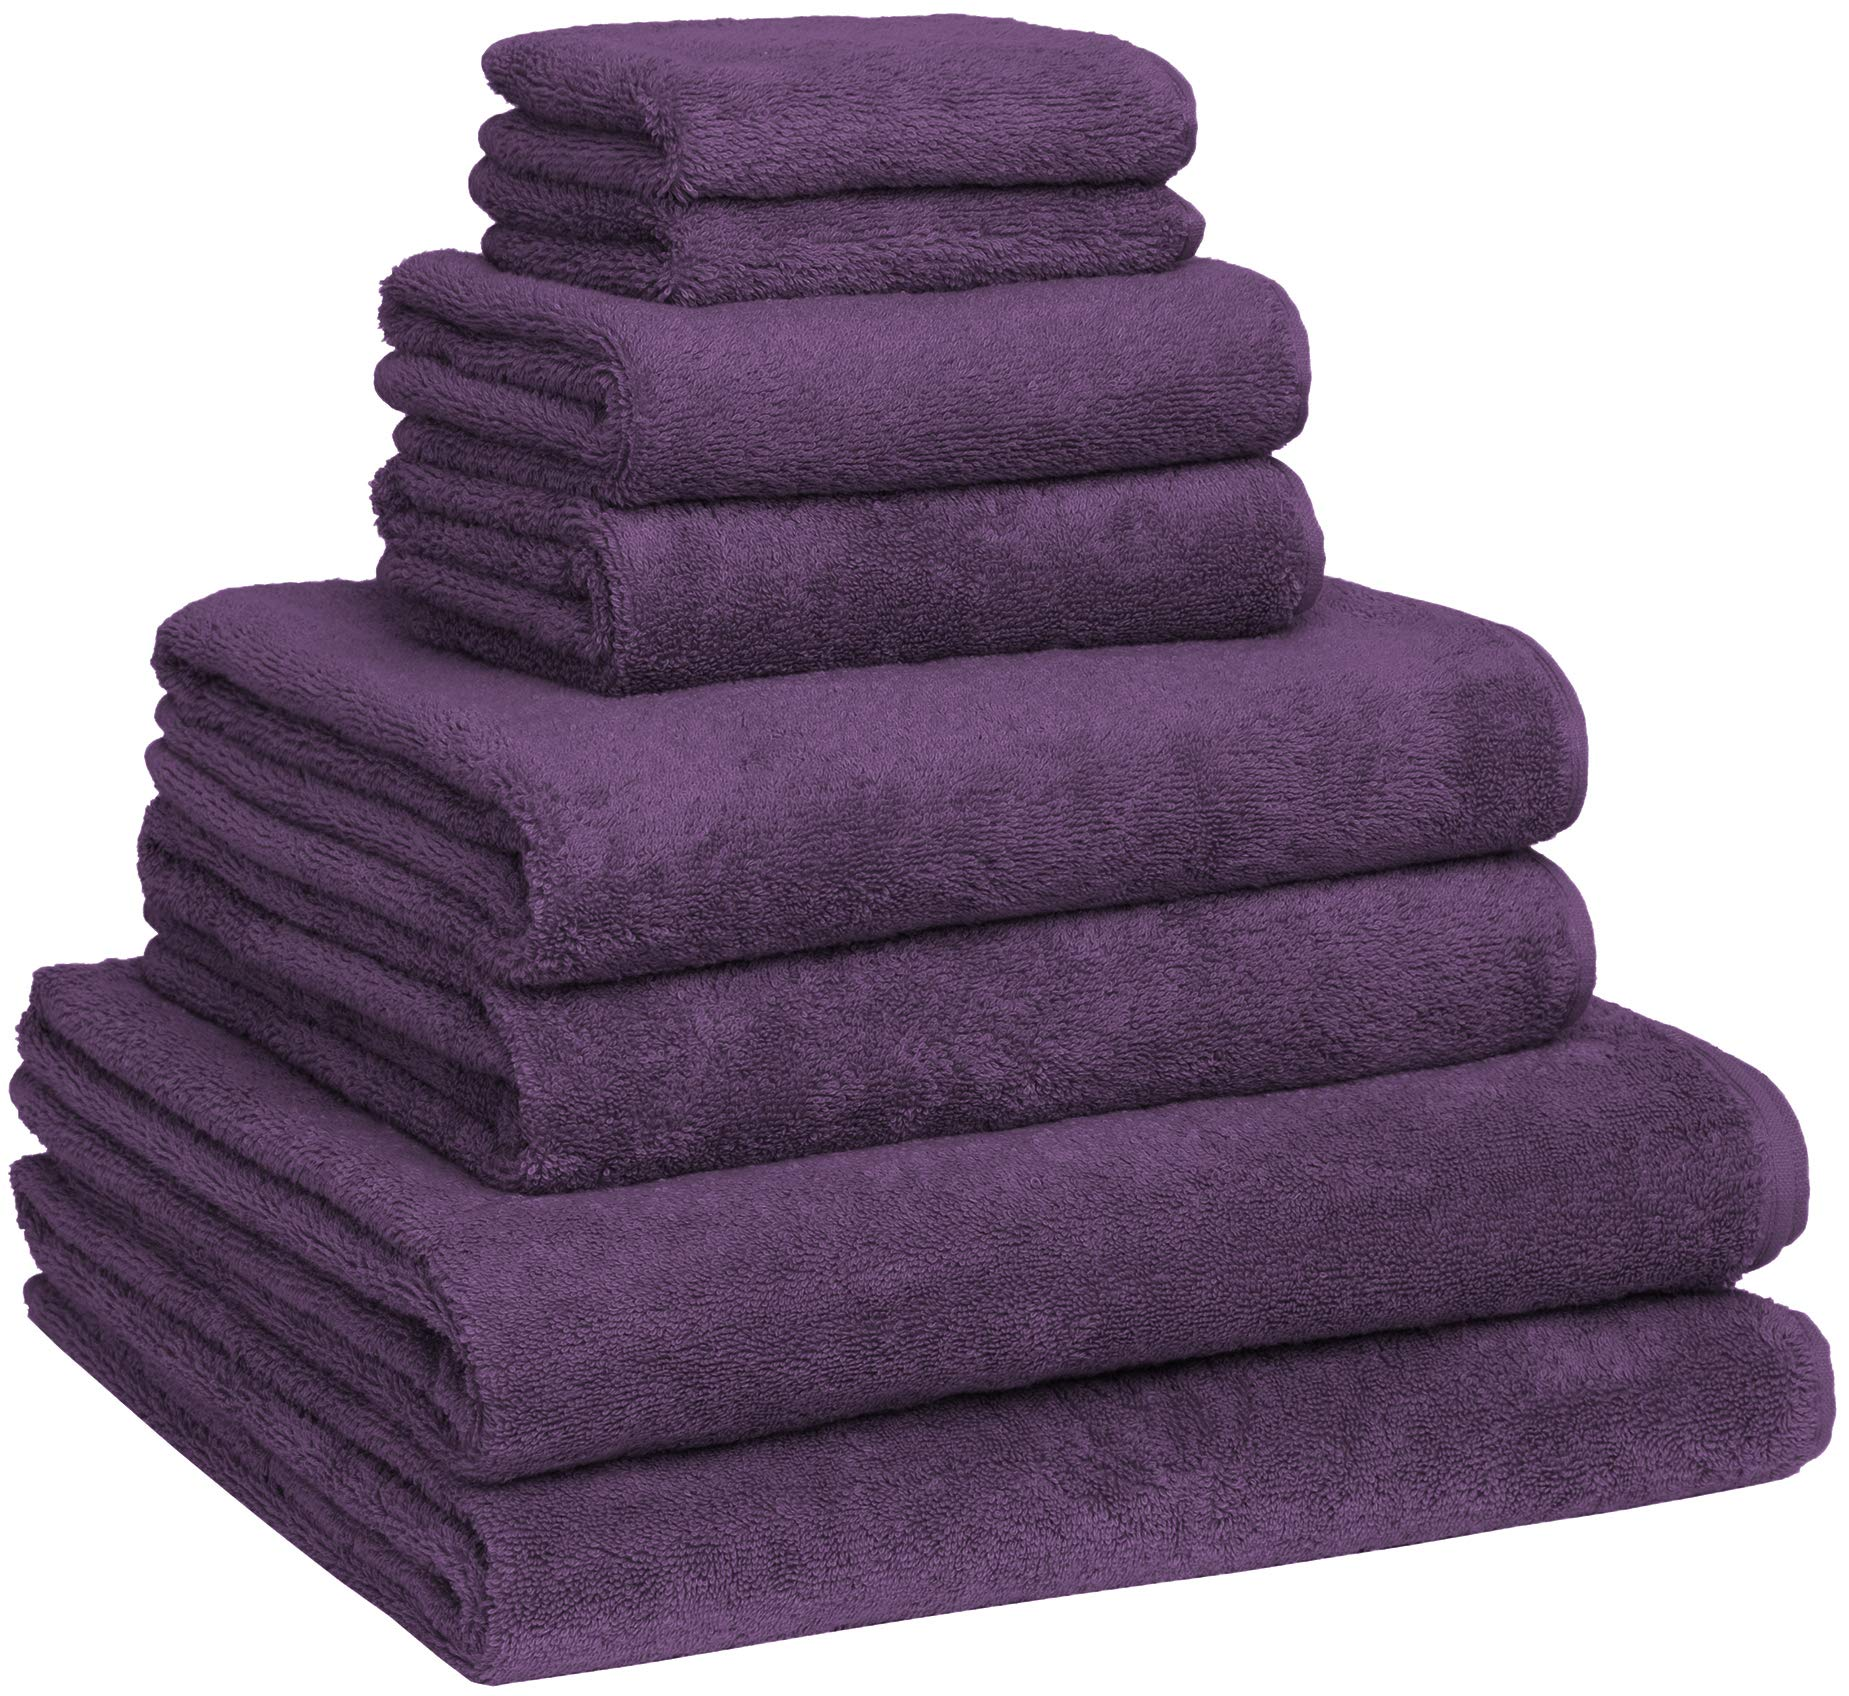 Home and Plan Turkish Cotton Bath Towel Set - Pack of 8 with 2 Bath Sheets (30x60) - Plum